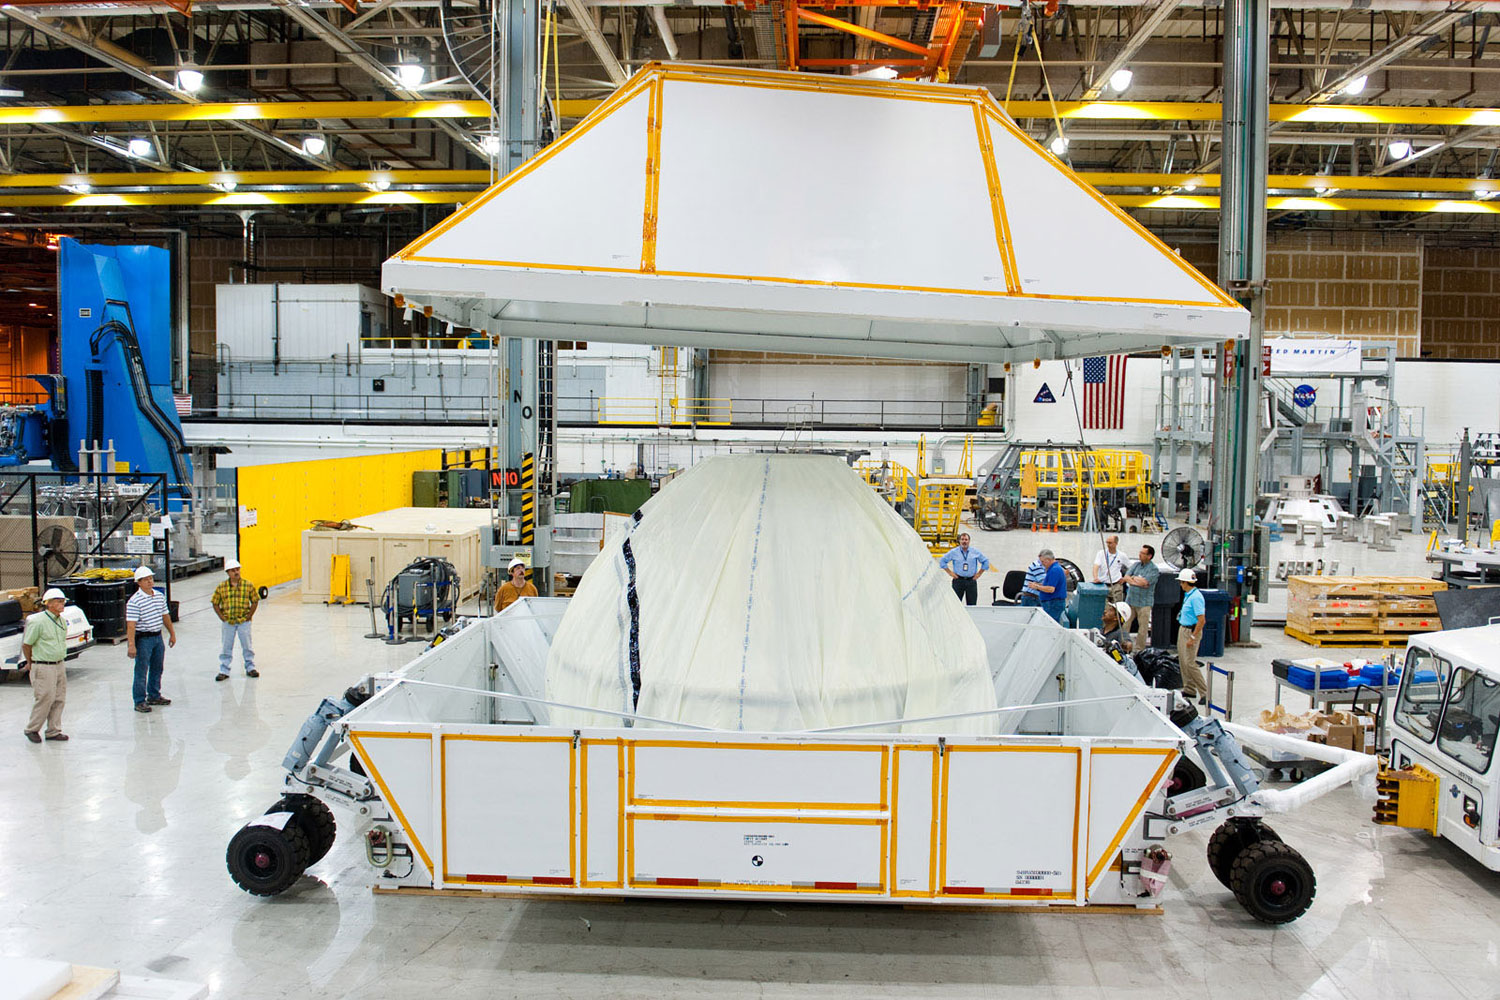 At NASA's Michoud Assembly Facility in Louisiana, the first space-bound Orion capsule is packed up for shipment to the Kennedy Space Center for final processing and outfitting.